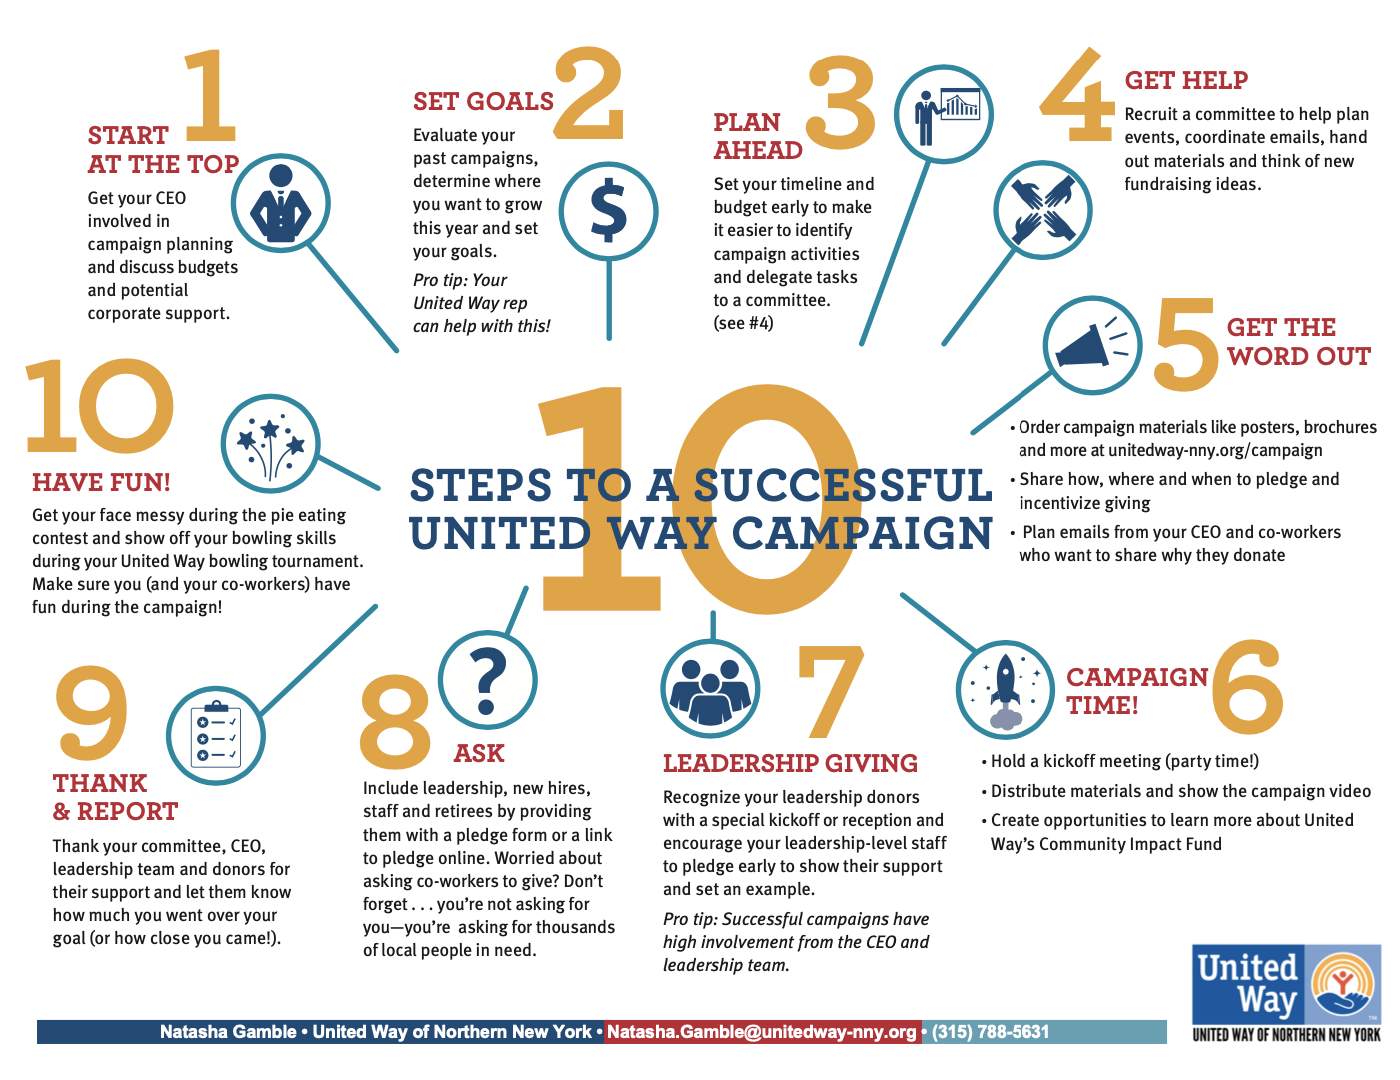 10 Steps to Successful Campaigns